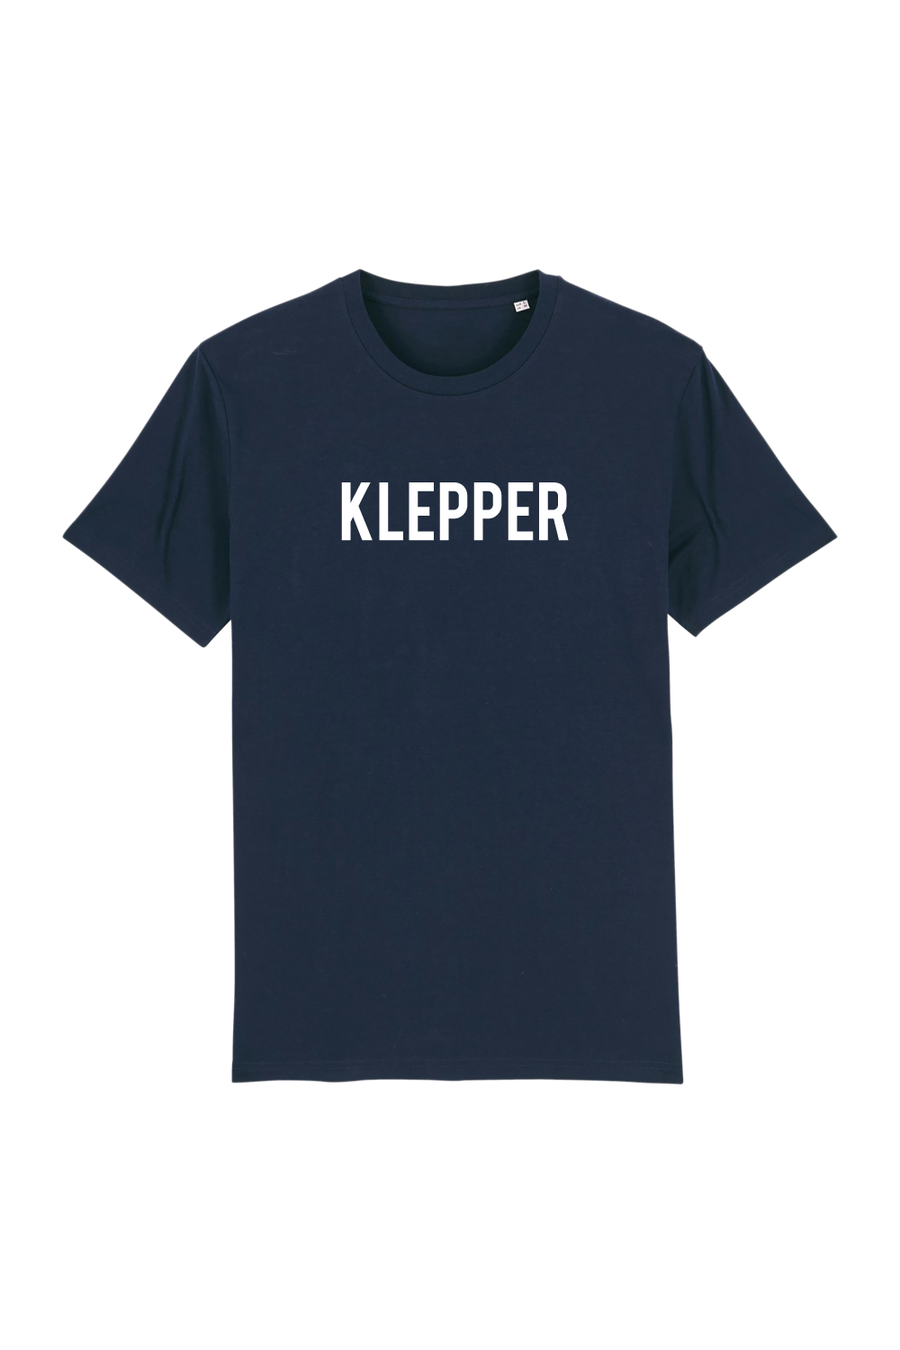 Klepper Kids - Joh Clothing